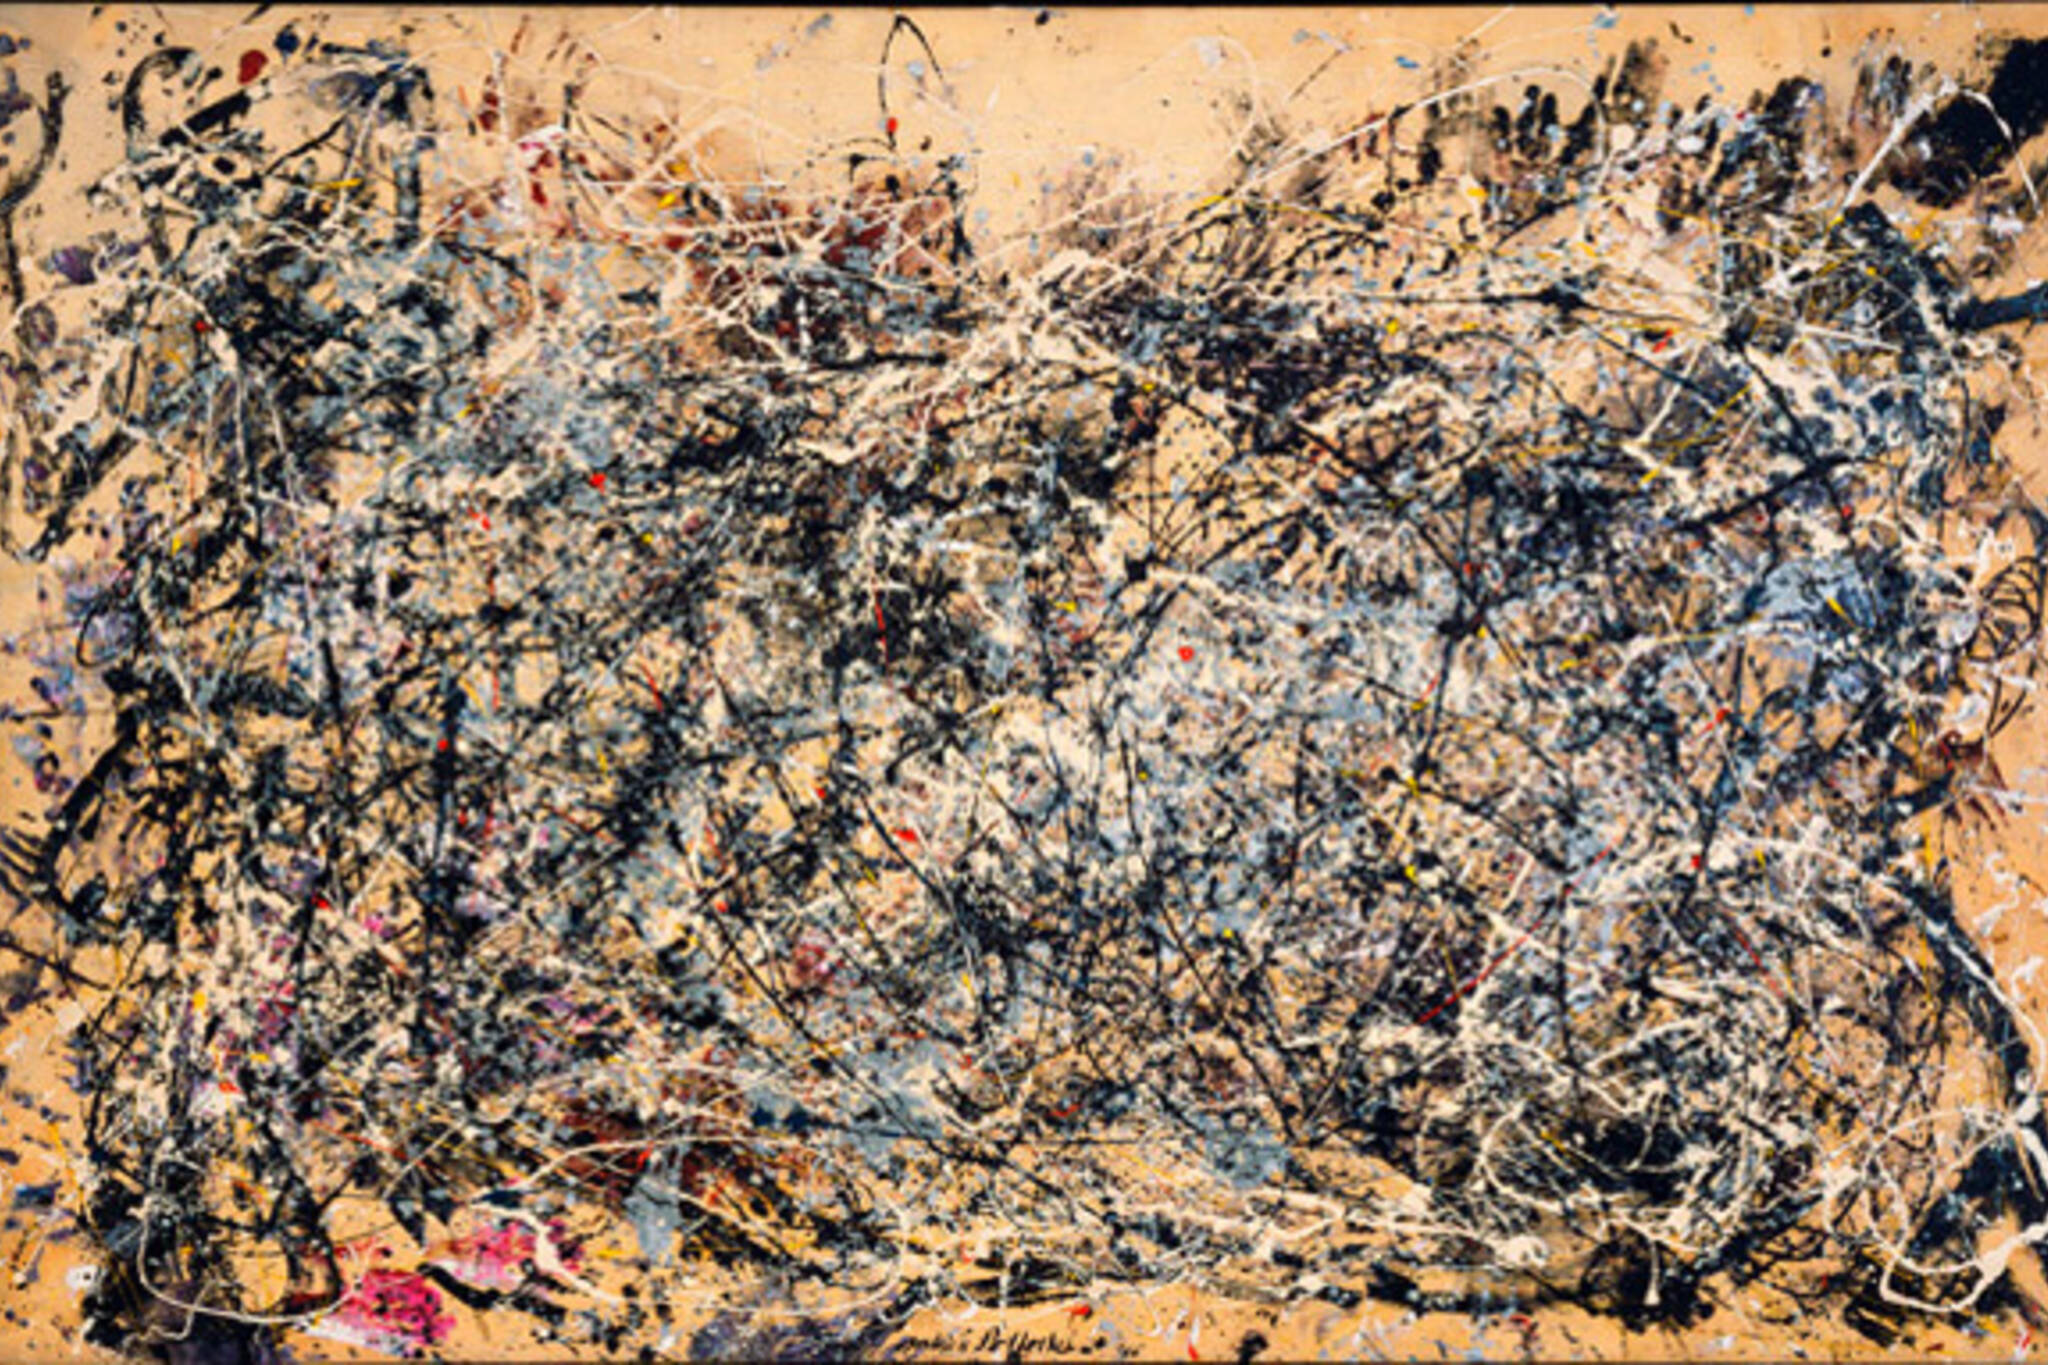 Abstract Expressionist New York AGO